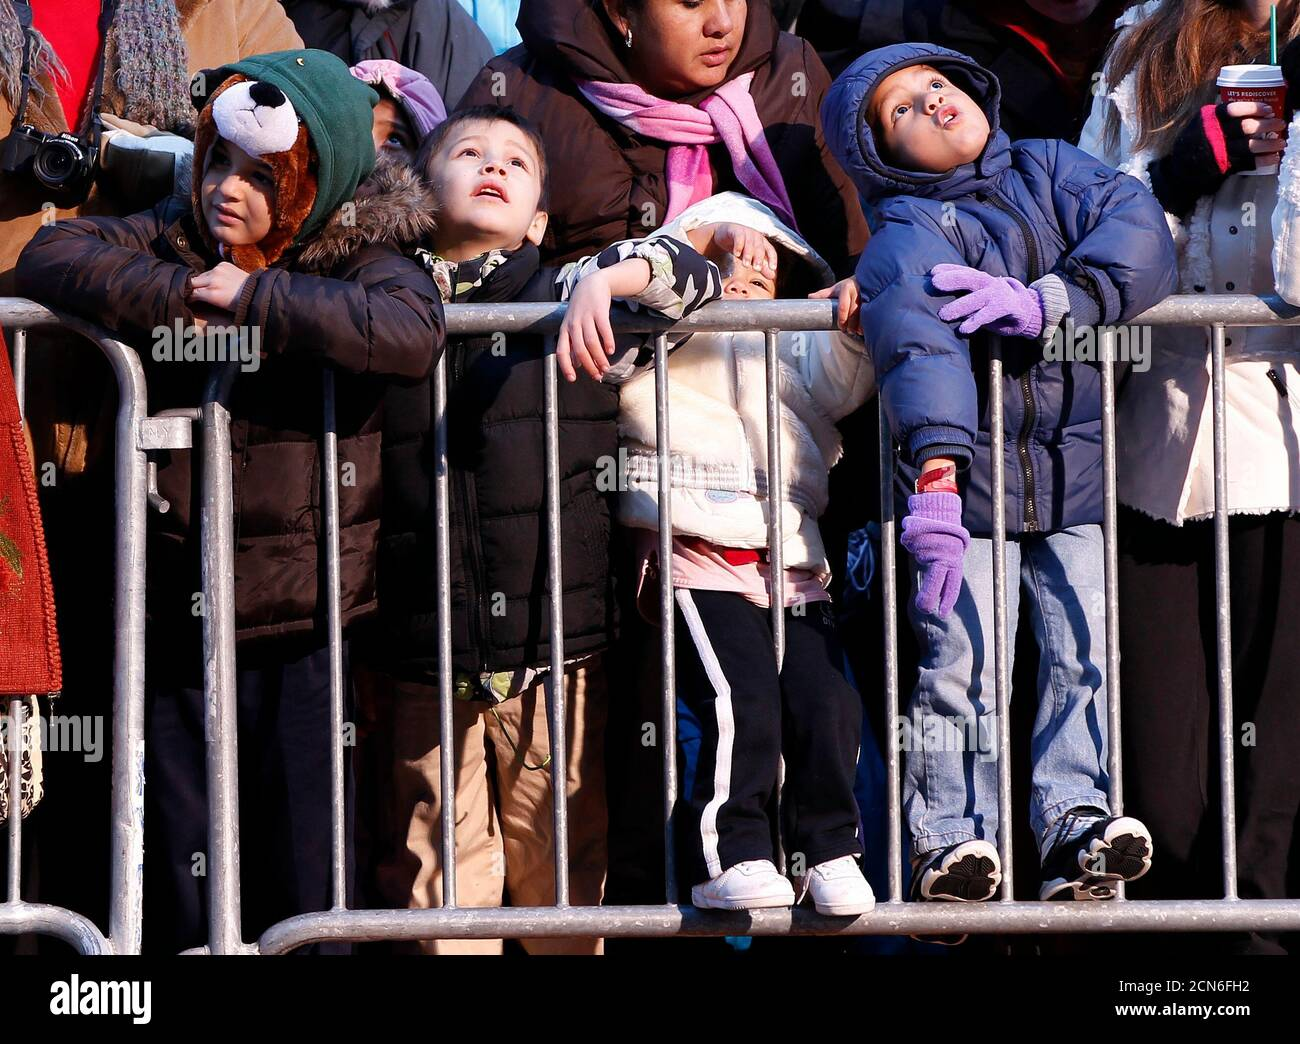 People watch as floats make their way through Times Square during the 85th annual Macy's Thanksgiving day parade in New York November 24, 2011. REUTERS/Shannon Stapleton (UNITED STATES - Tags: ENTERTAINMENT SOCIETY) Stock Photo